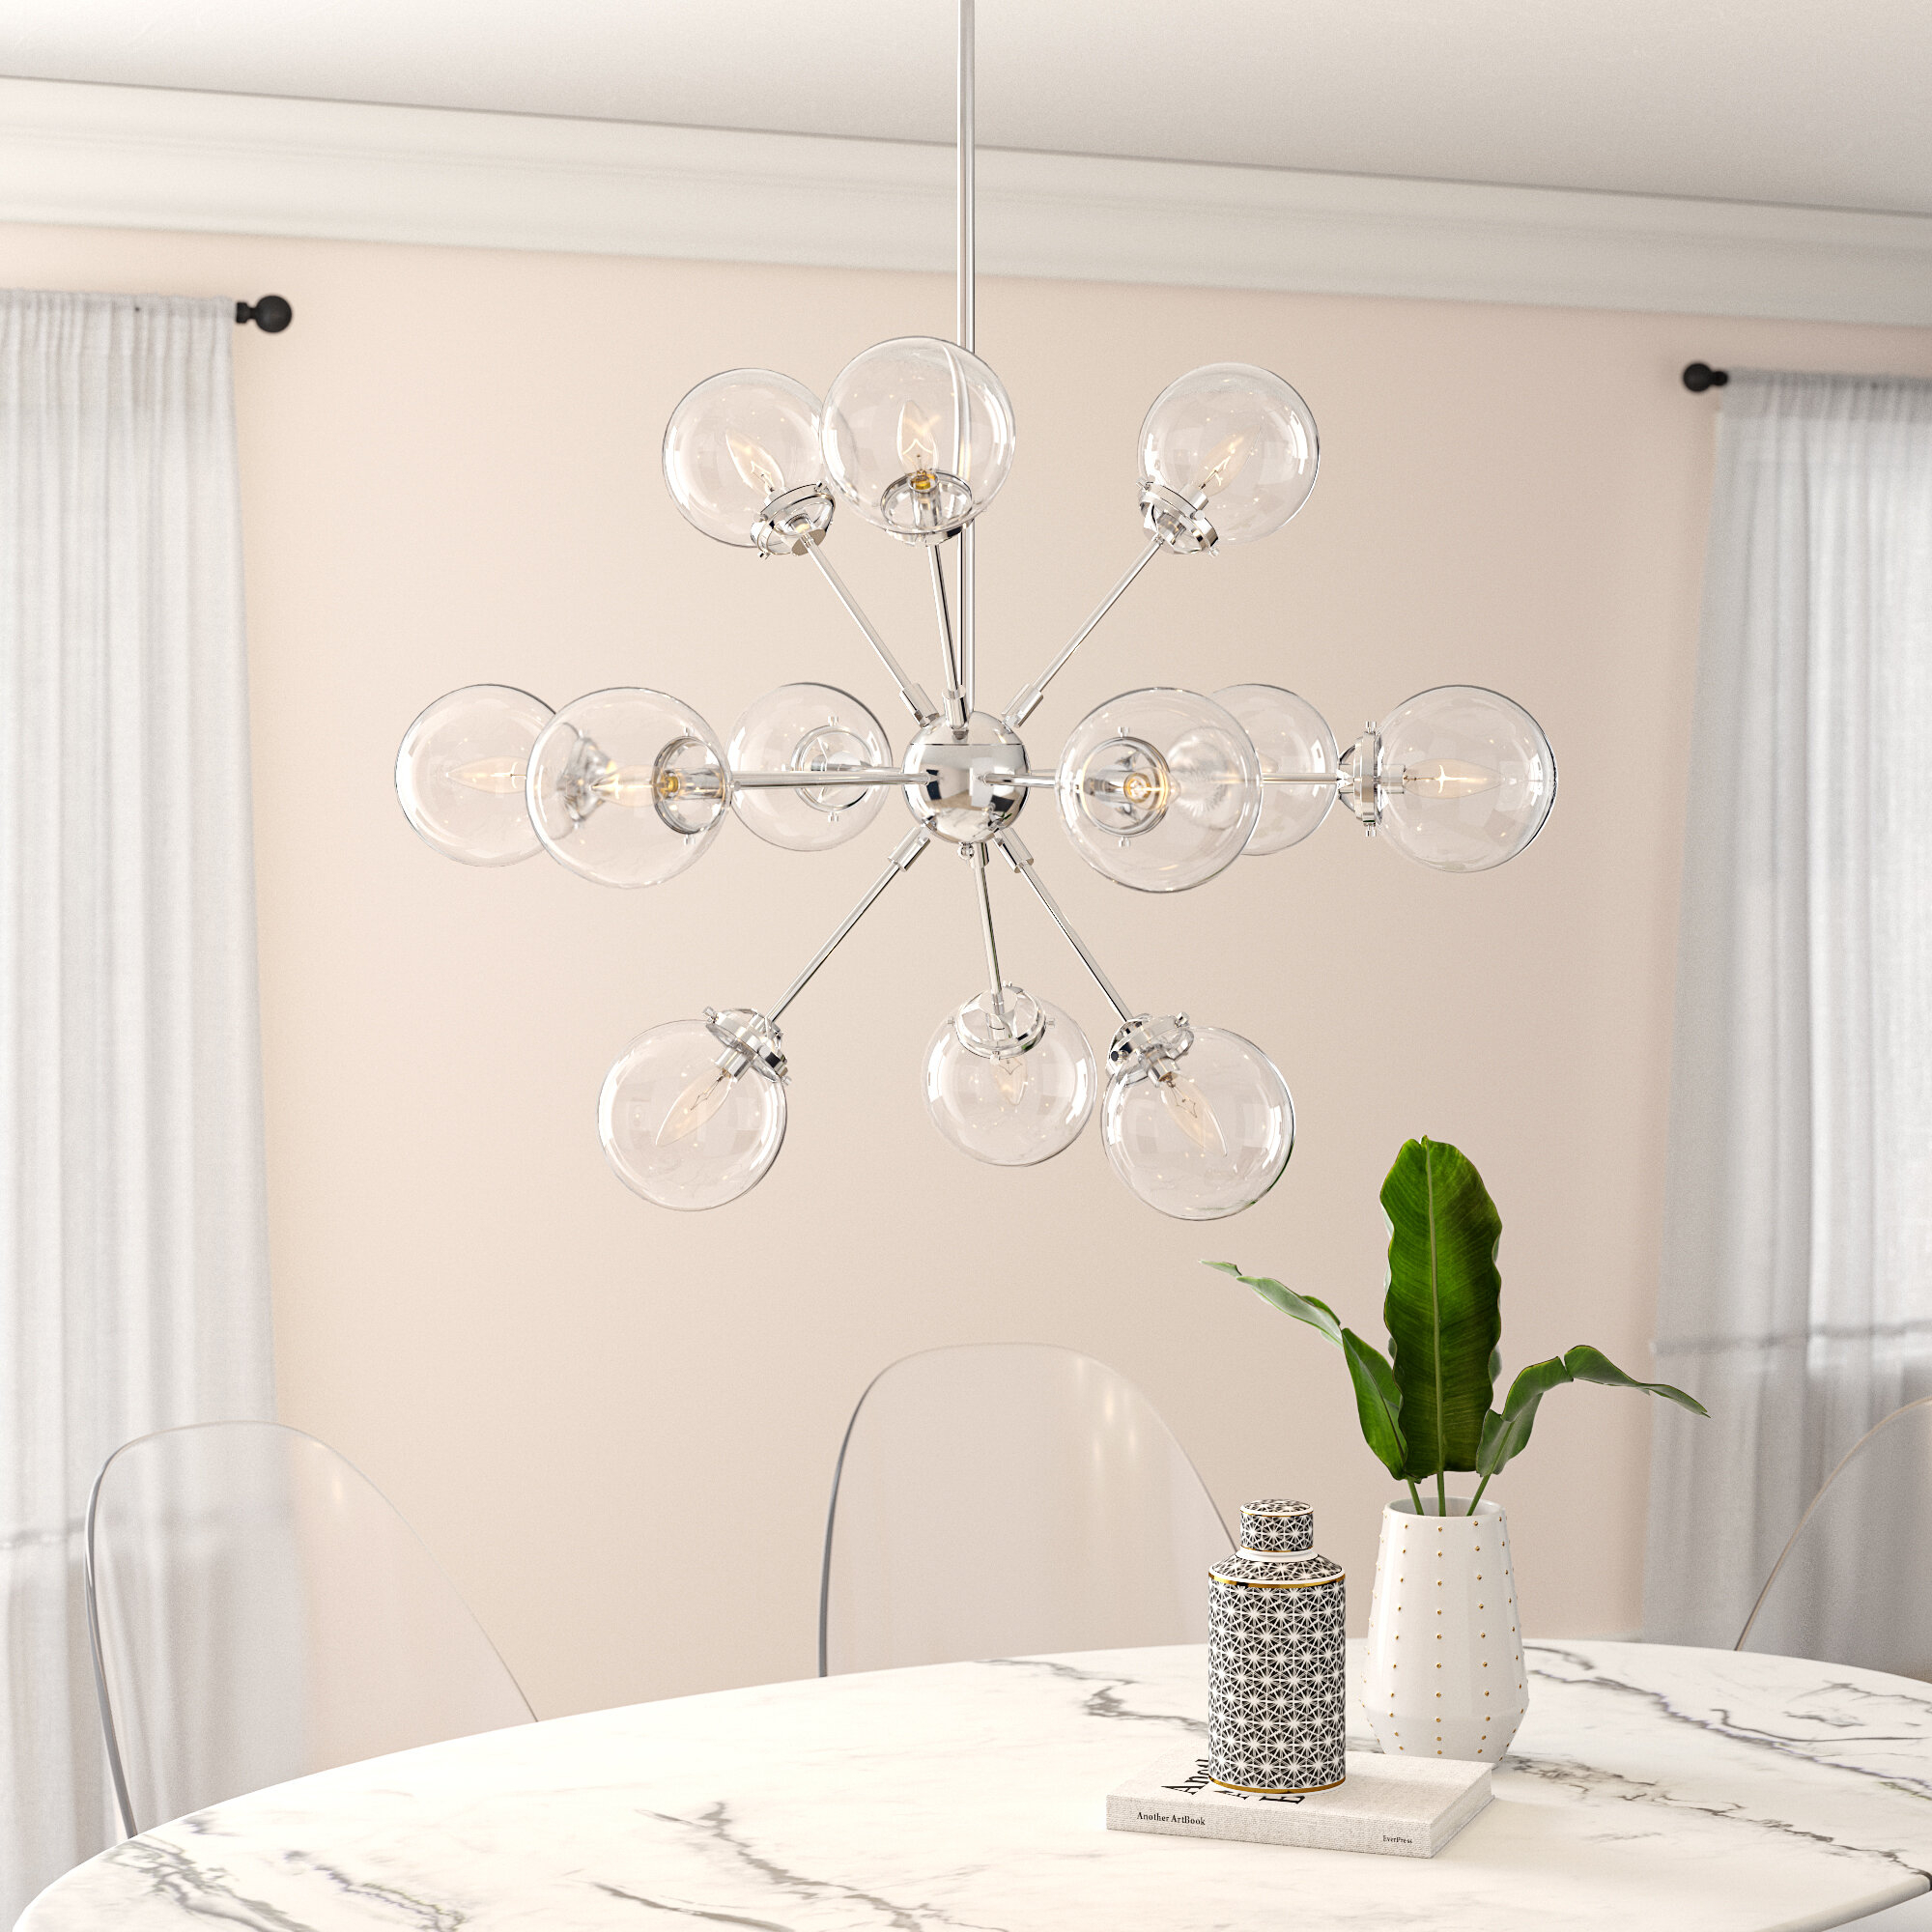 Modern Rustic Interiors Asher 12-Light Sputnik Chandelier pertaining to Asher 12-Light Sputnik Chandeliers (Image 23 of 30)